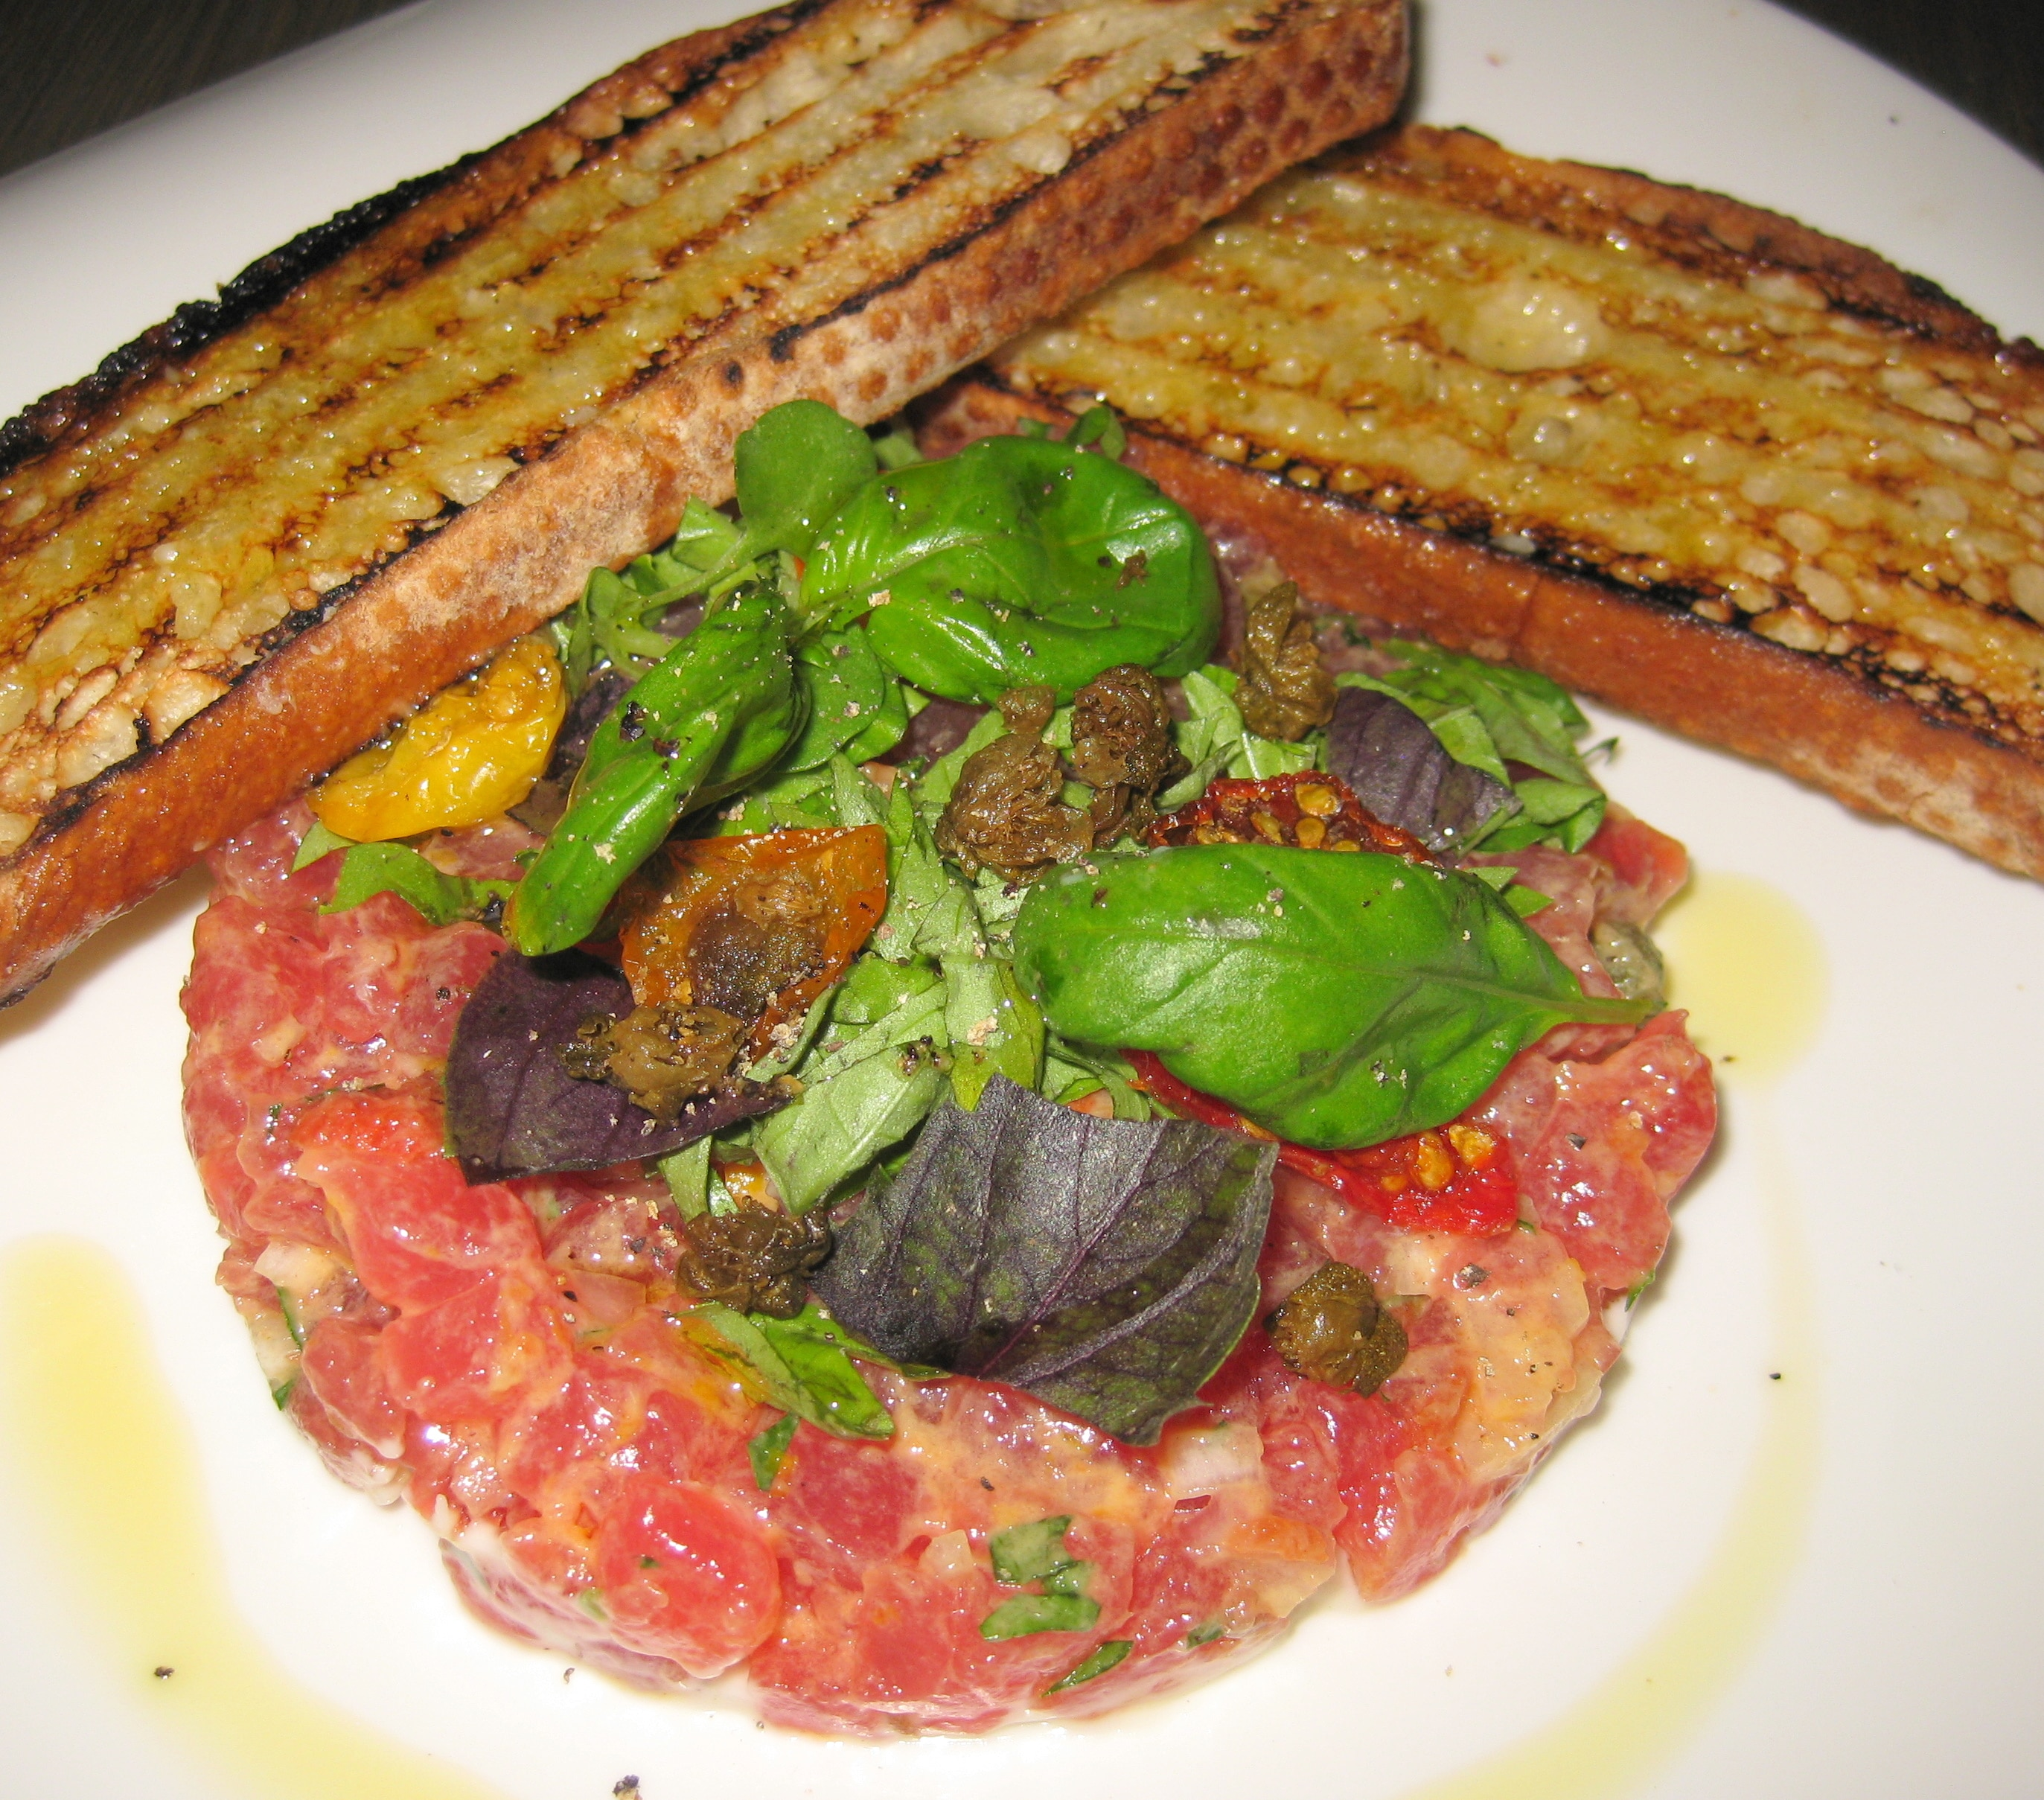 ... avocado tuna tomato and basil tartare recipe yummly basil tuna tomato